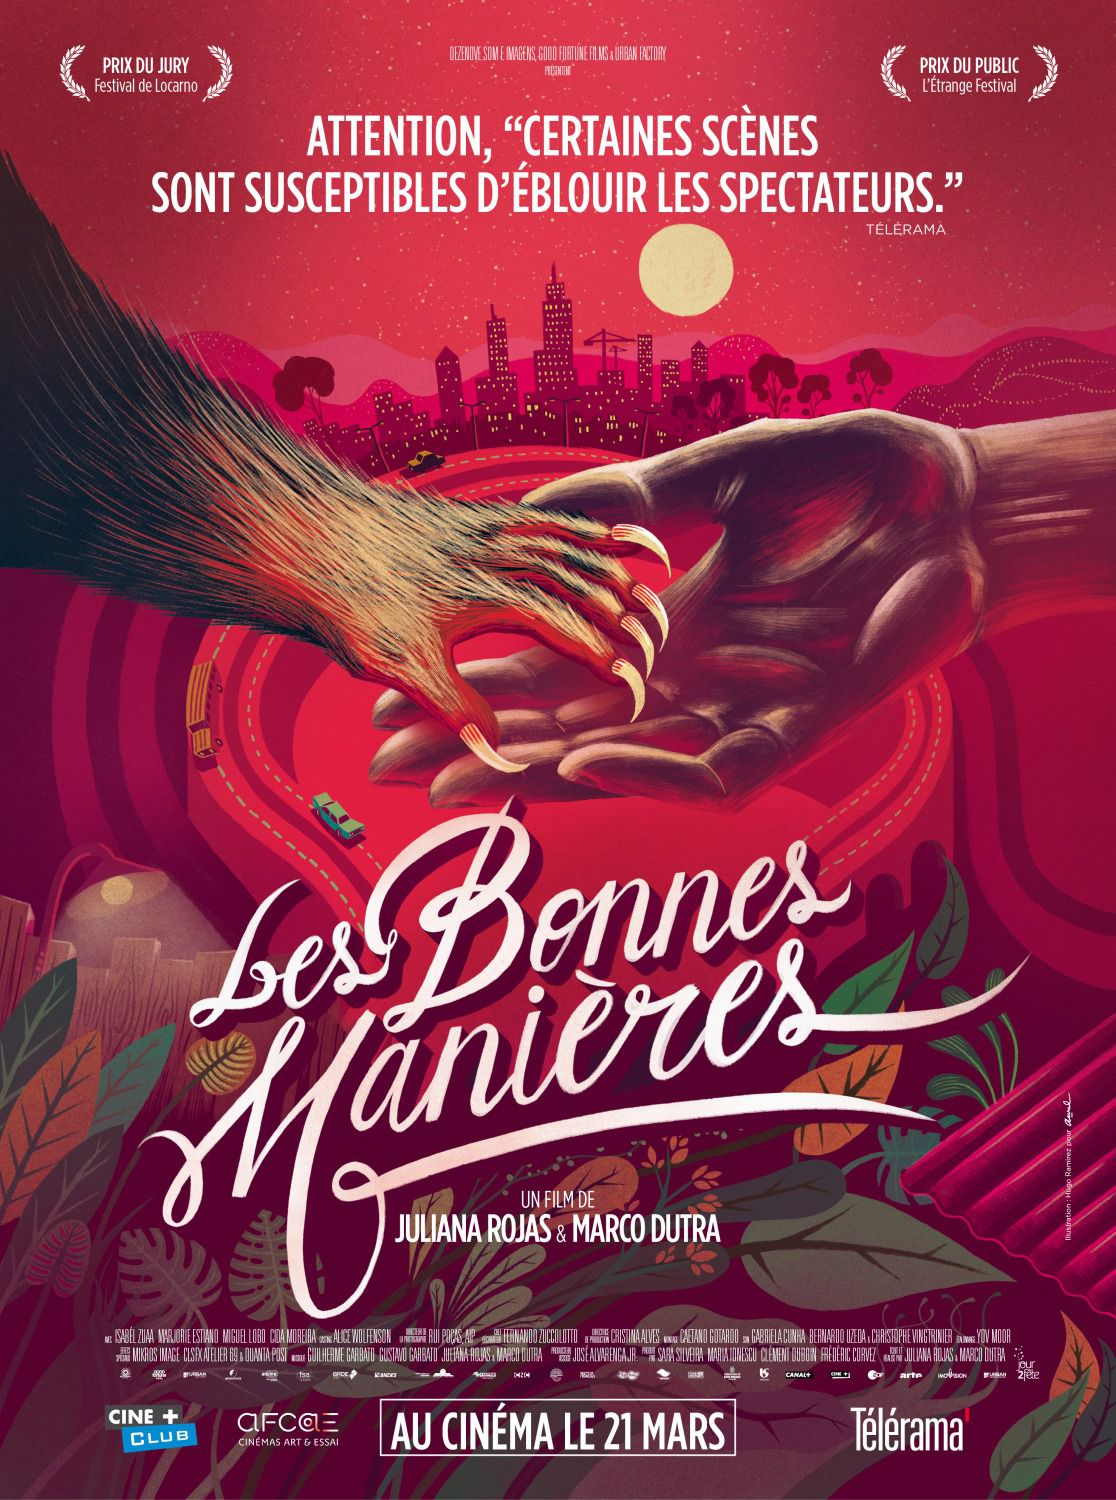 As Boas Maneiras - hands poster